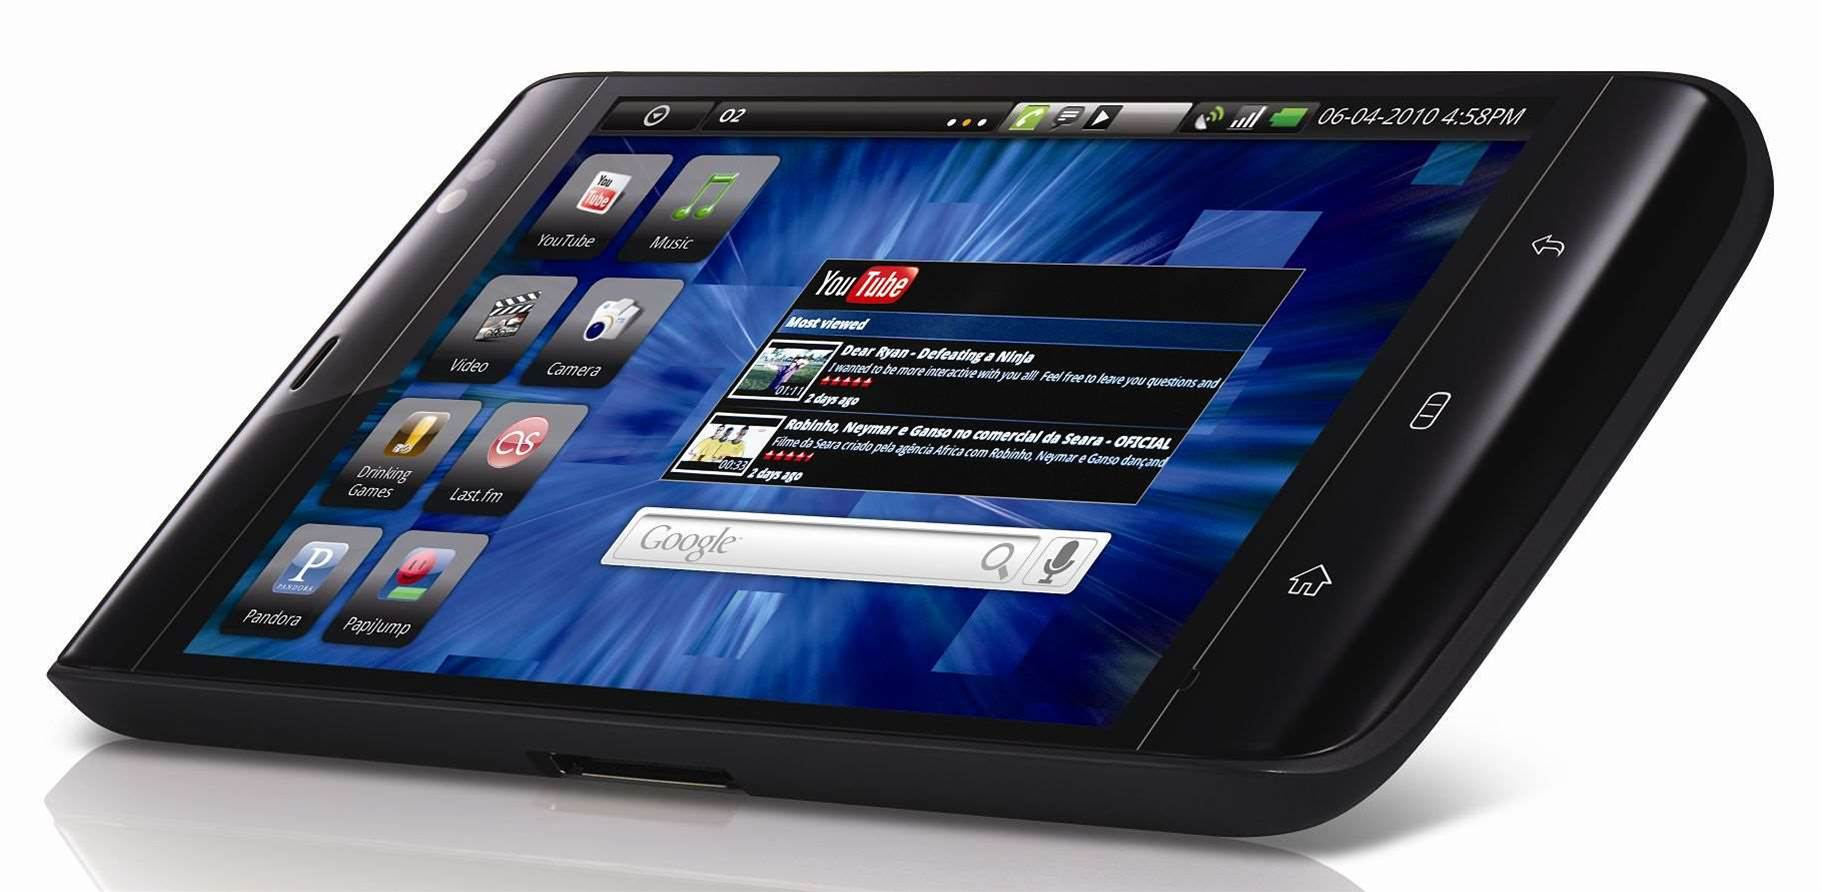 Dell plots late-2012 consumer tablet launch